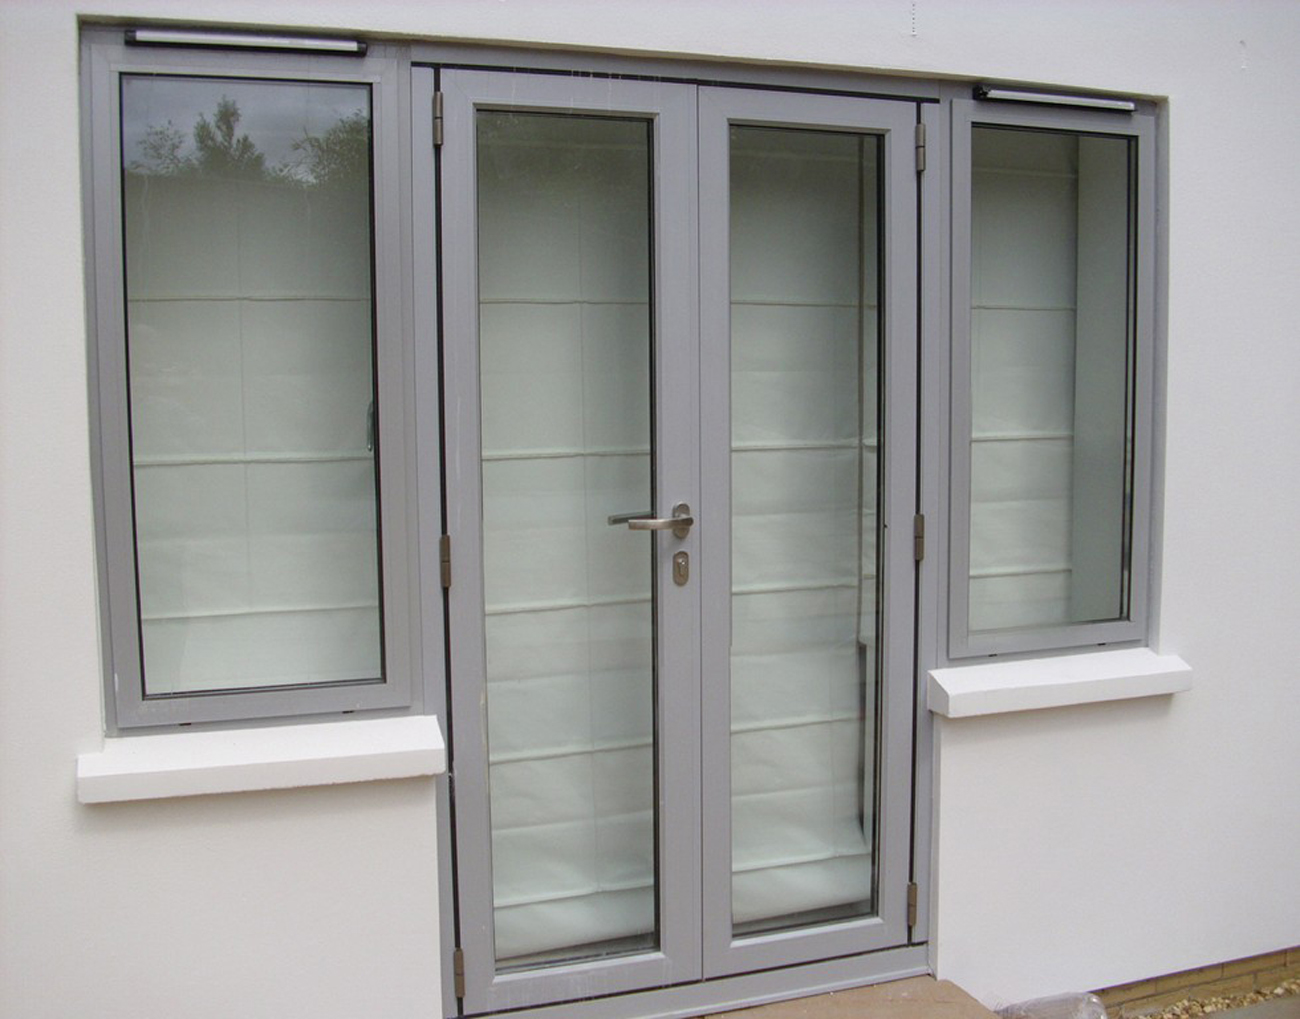 aluminium-french-doors-exterior-door-aluminium-entrance-doors-pivot-door-french-and-single-doors-on-exterior-amazing